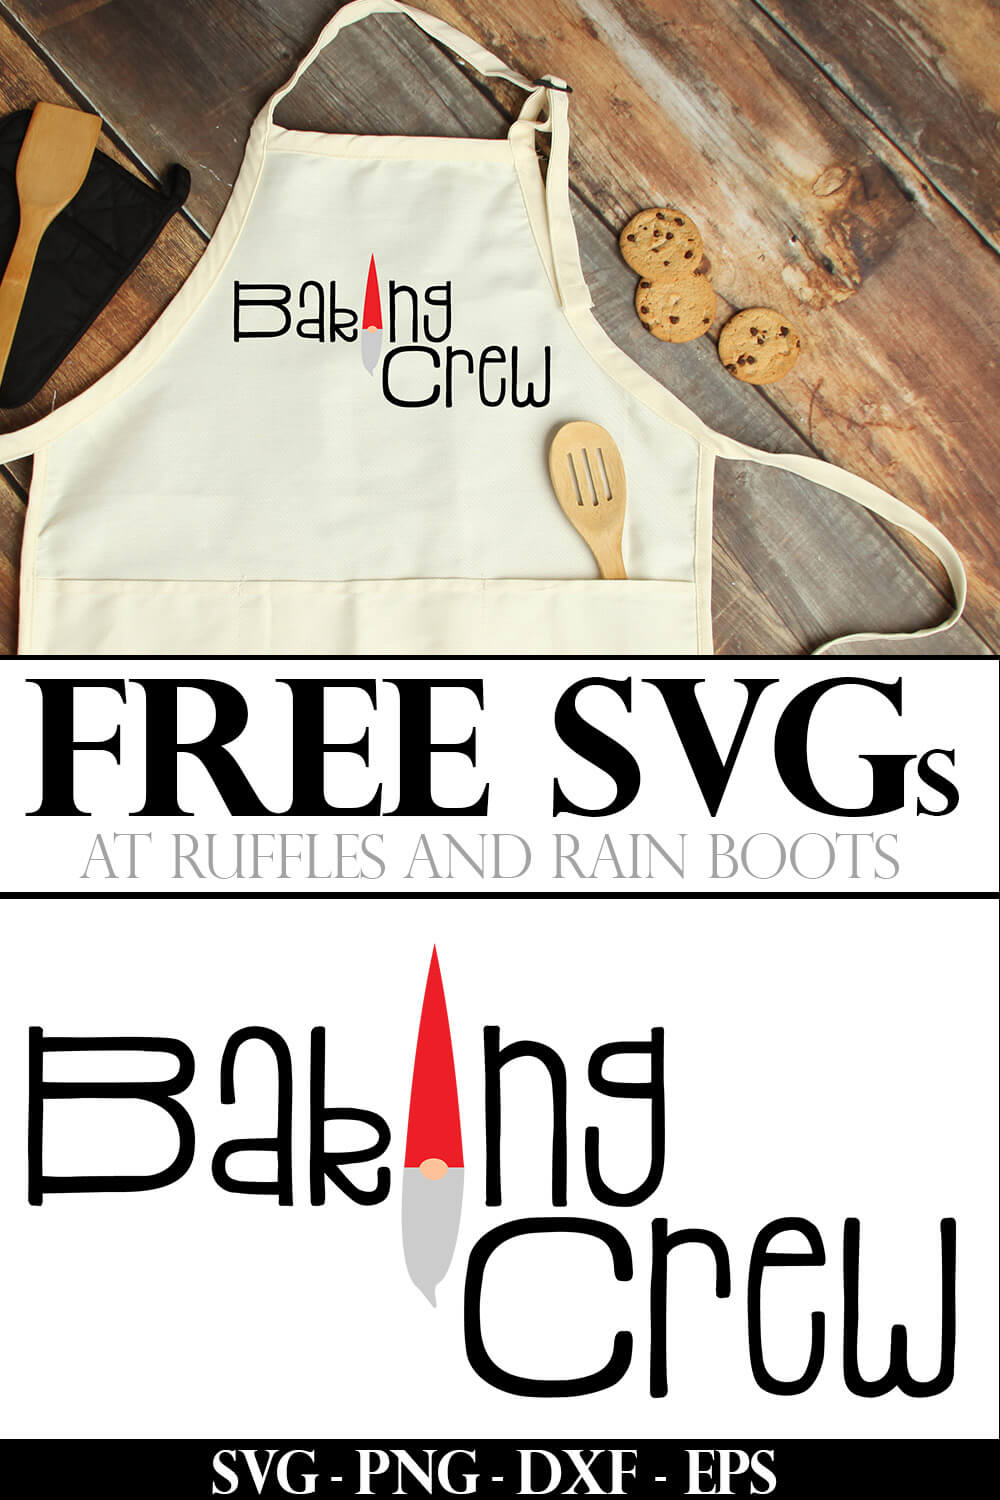 example of free svg for cricut baking crew used on an adorable kids holiday apron for christmas baking with text which reads free svgs